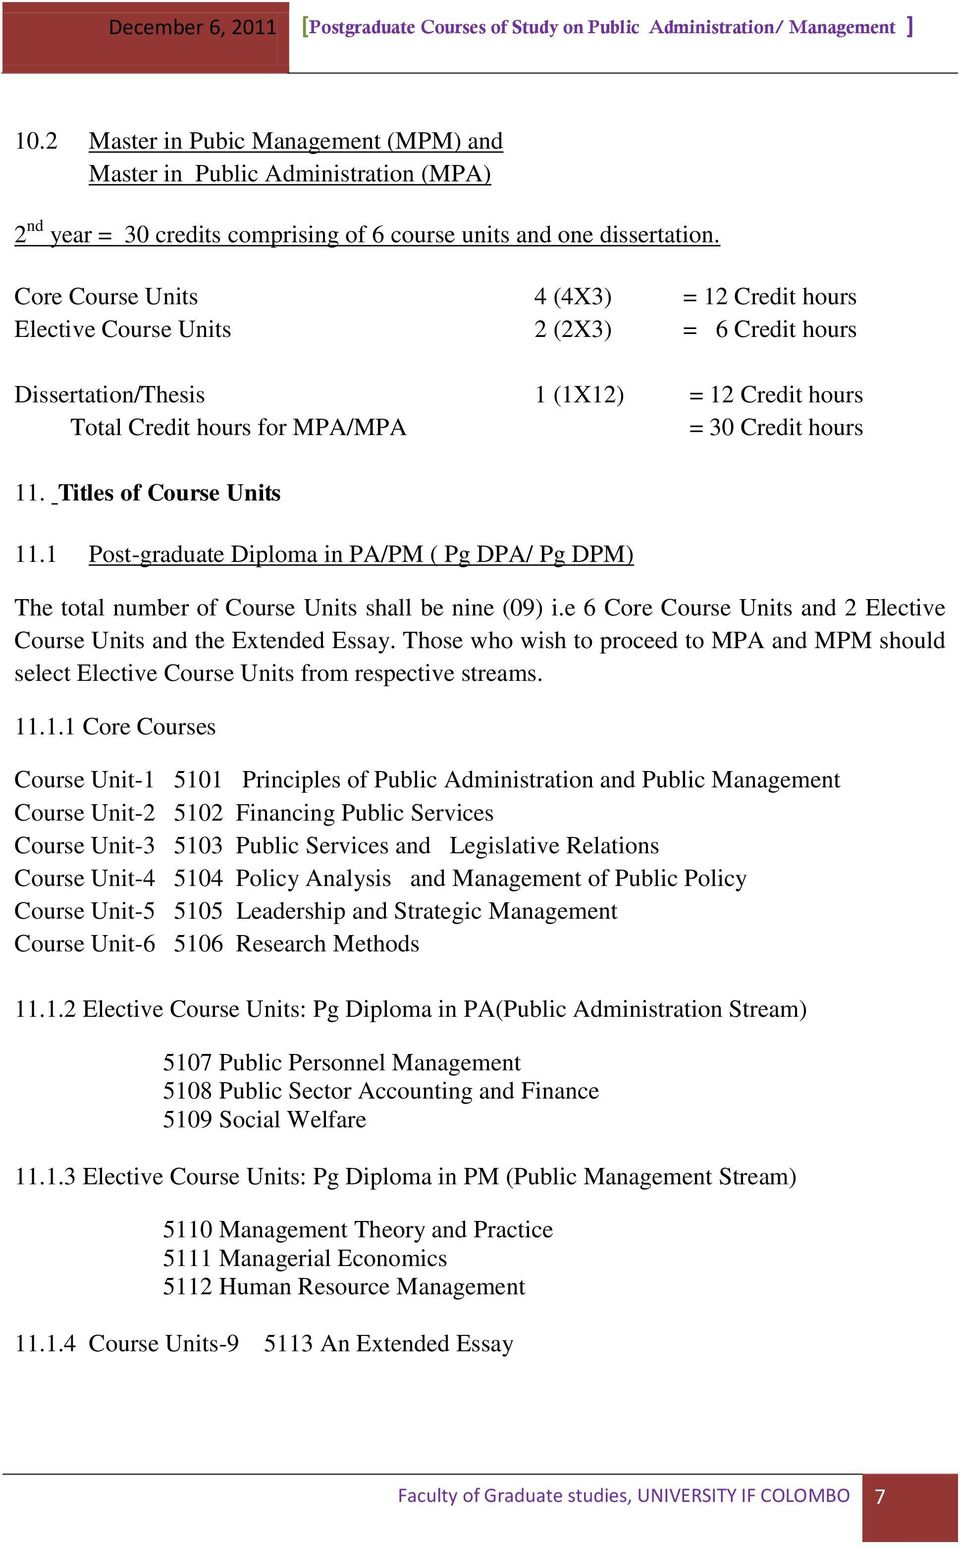 Titles of Course Units 11.1 Post-graduate Diploma in PA/PM ( Pg DPA/ Pg DPM) The total number of Course Units shall be nine (09) i.